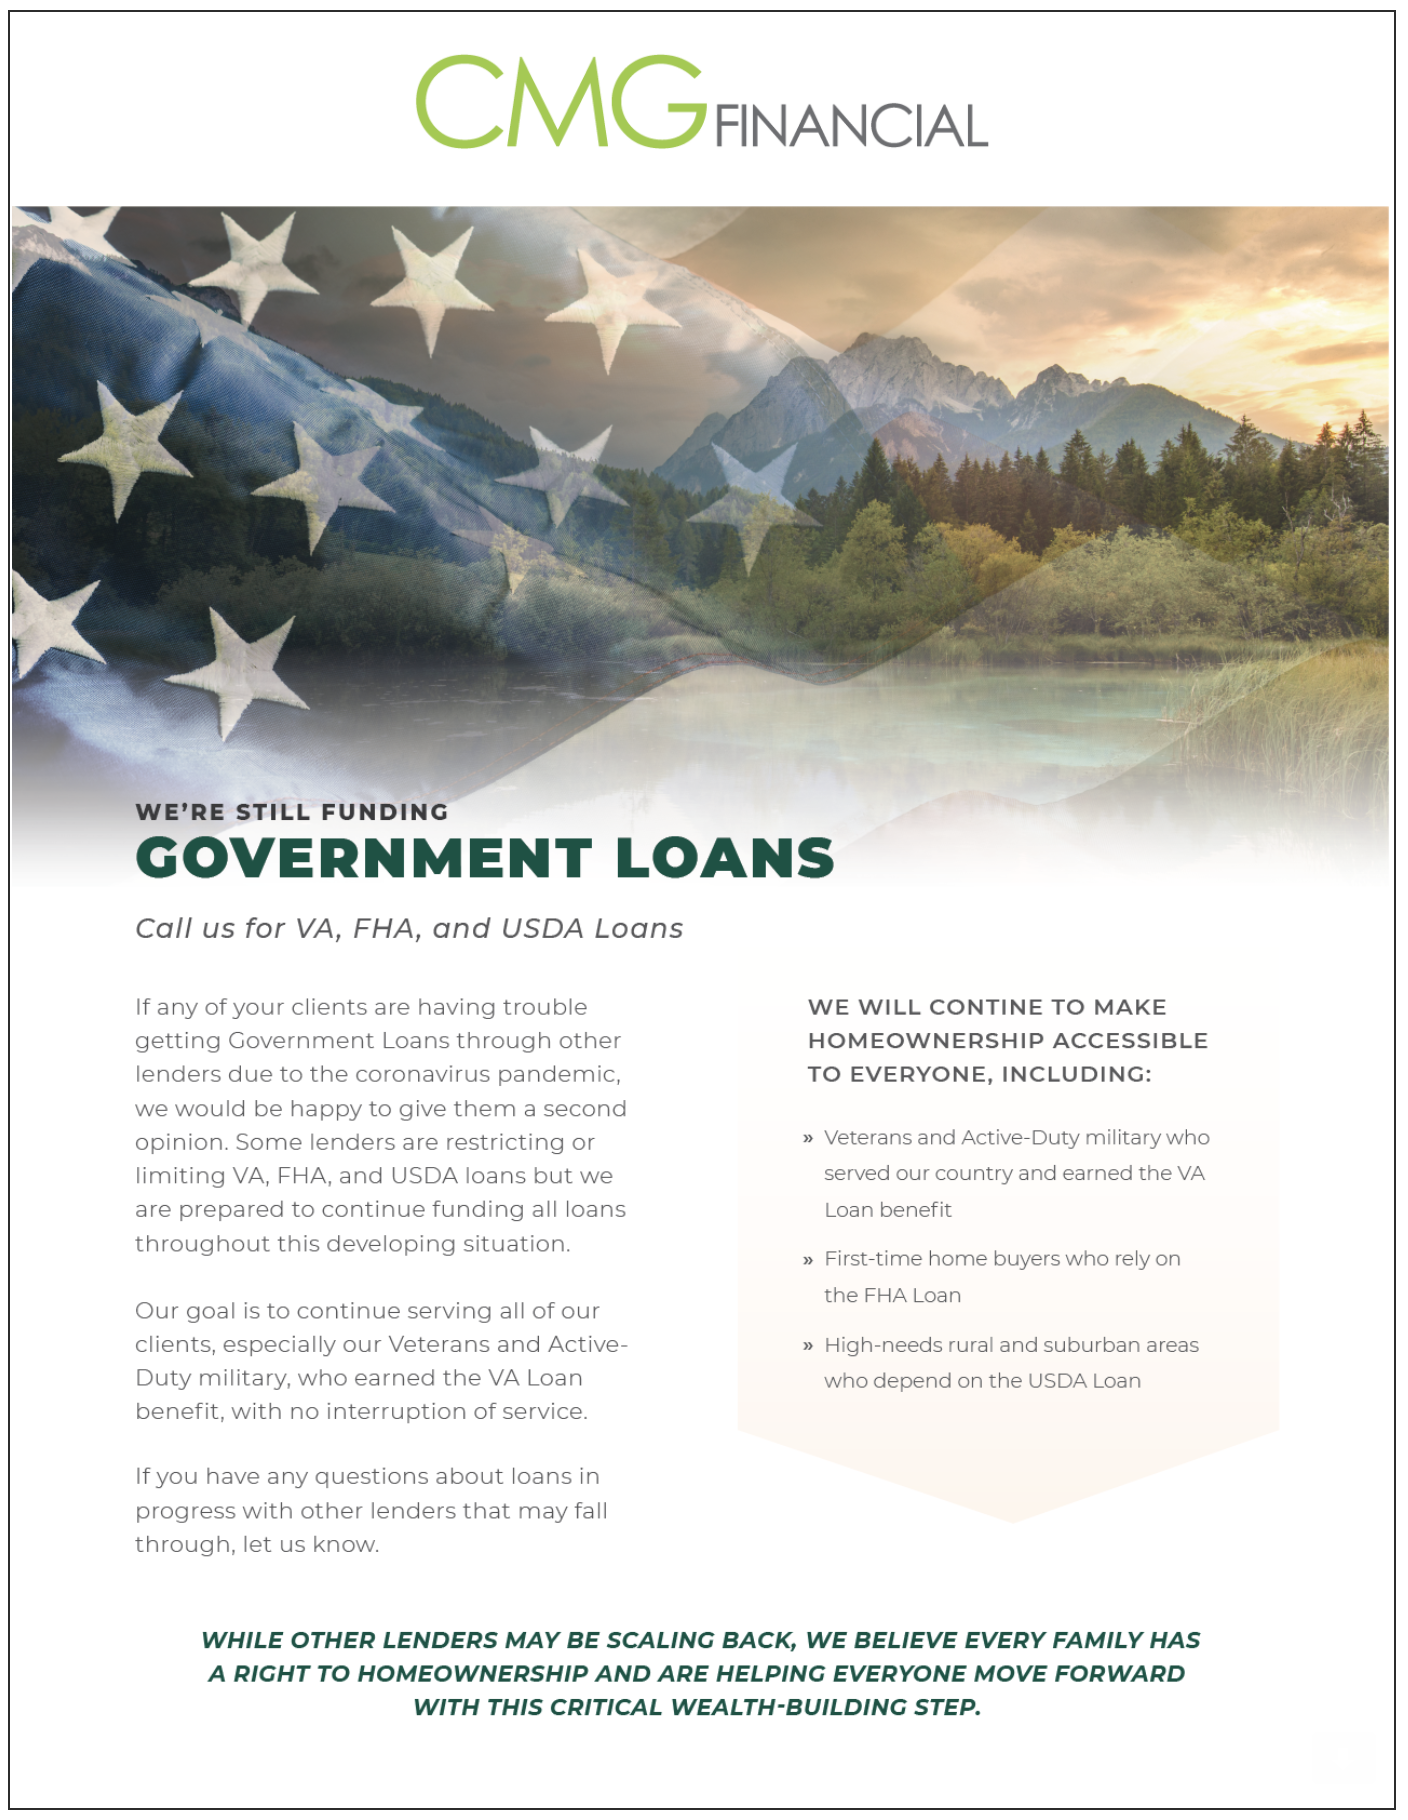 government loans are still funding